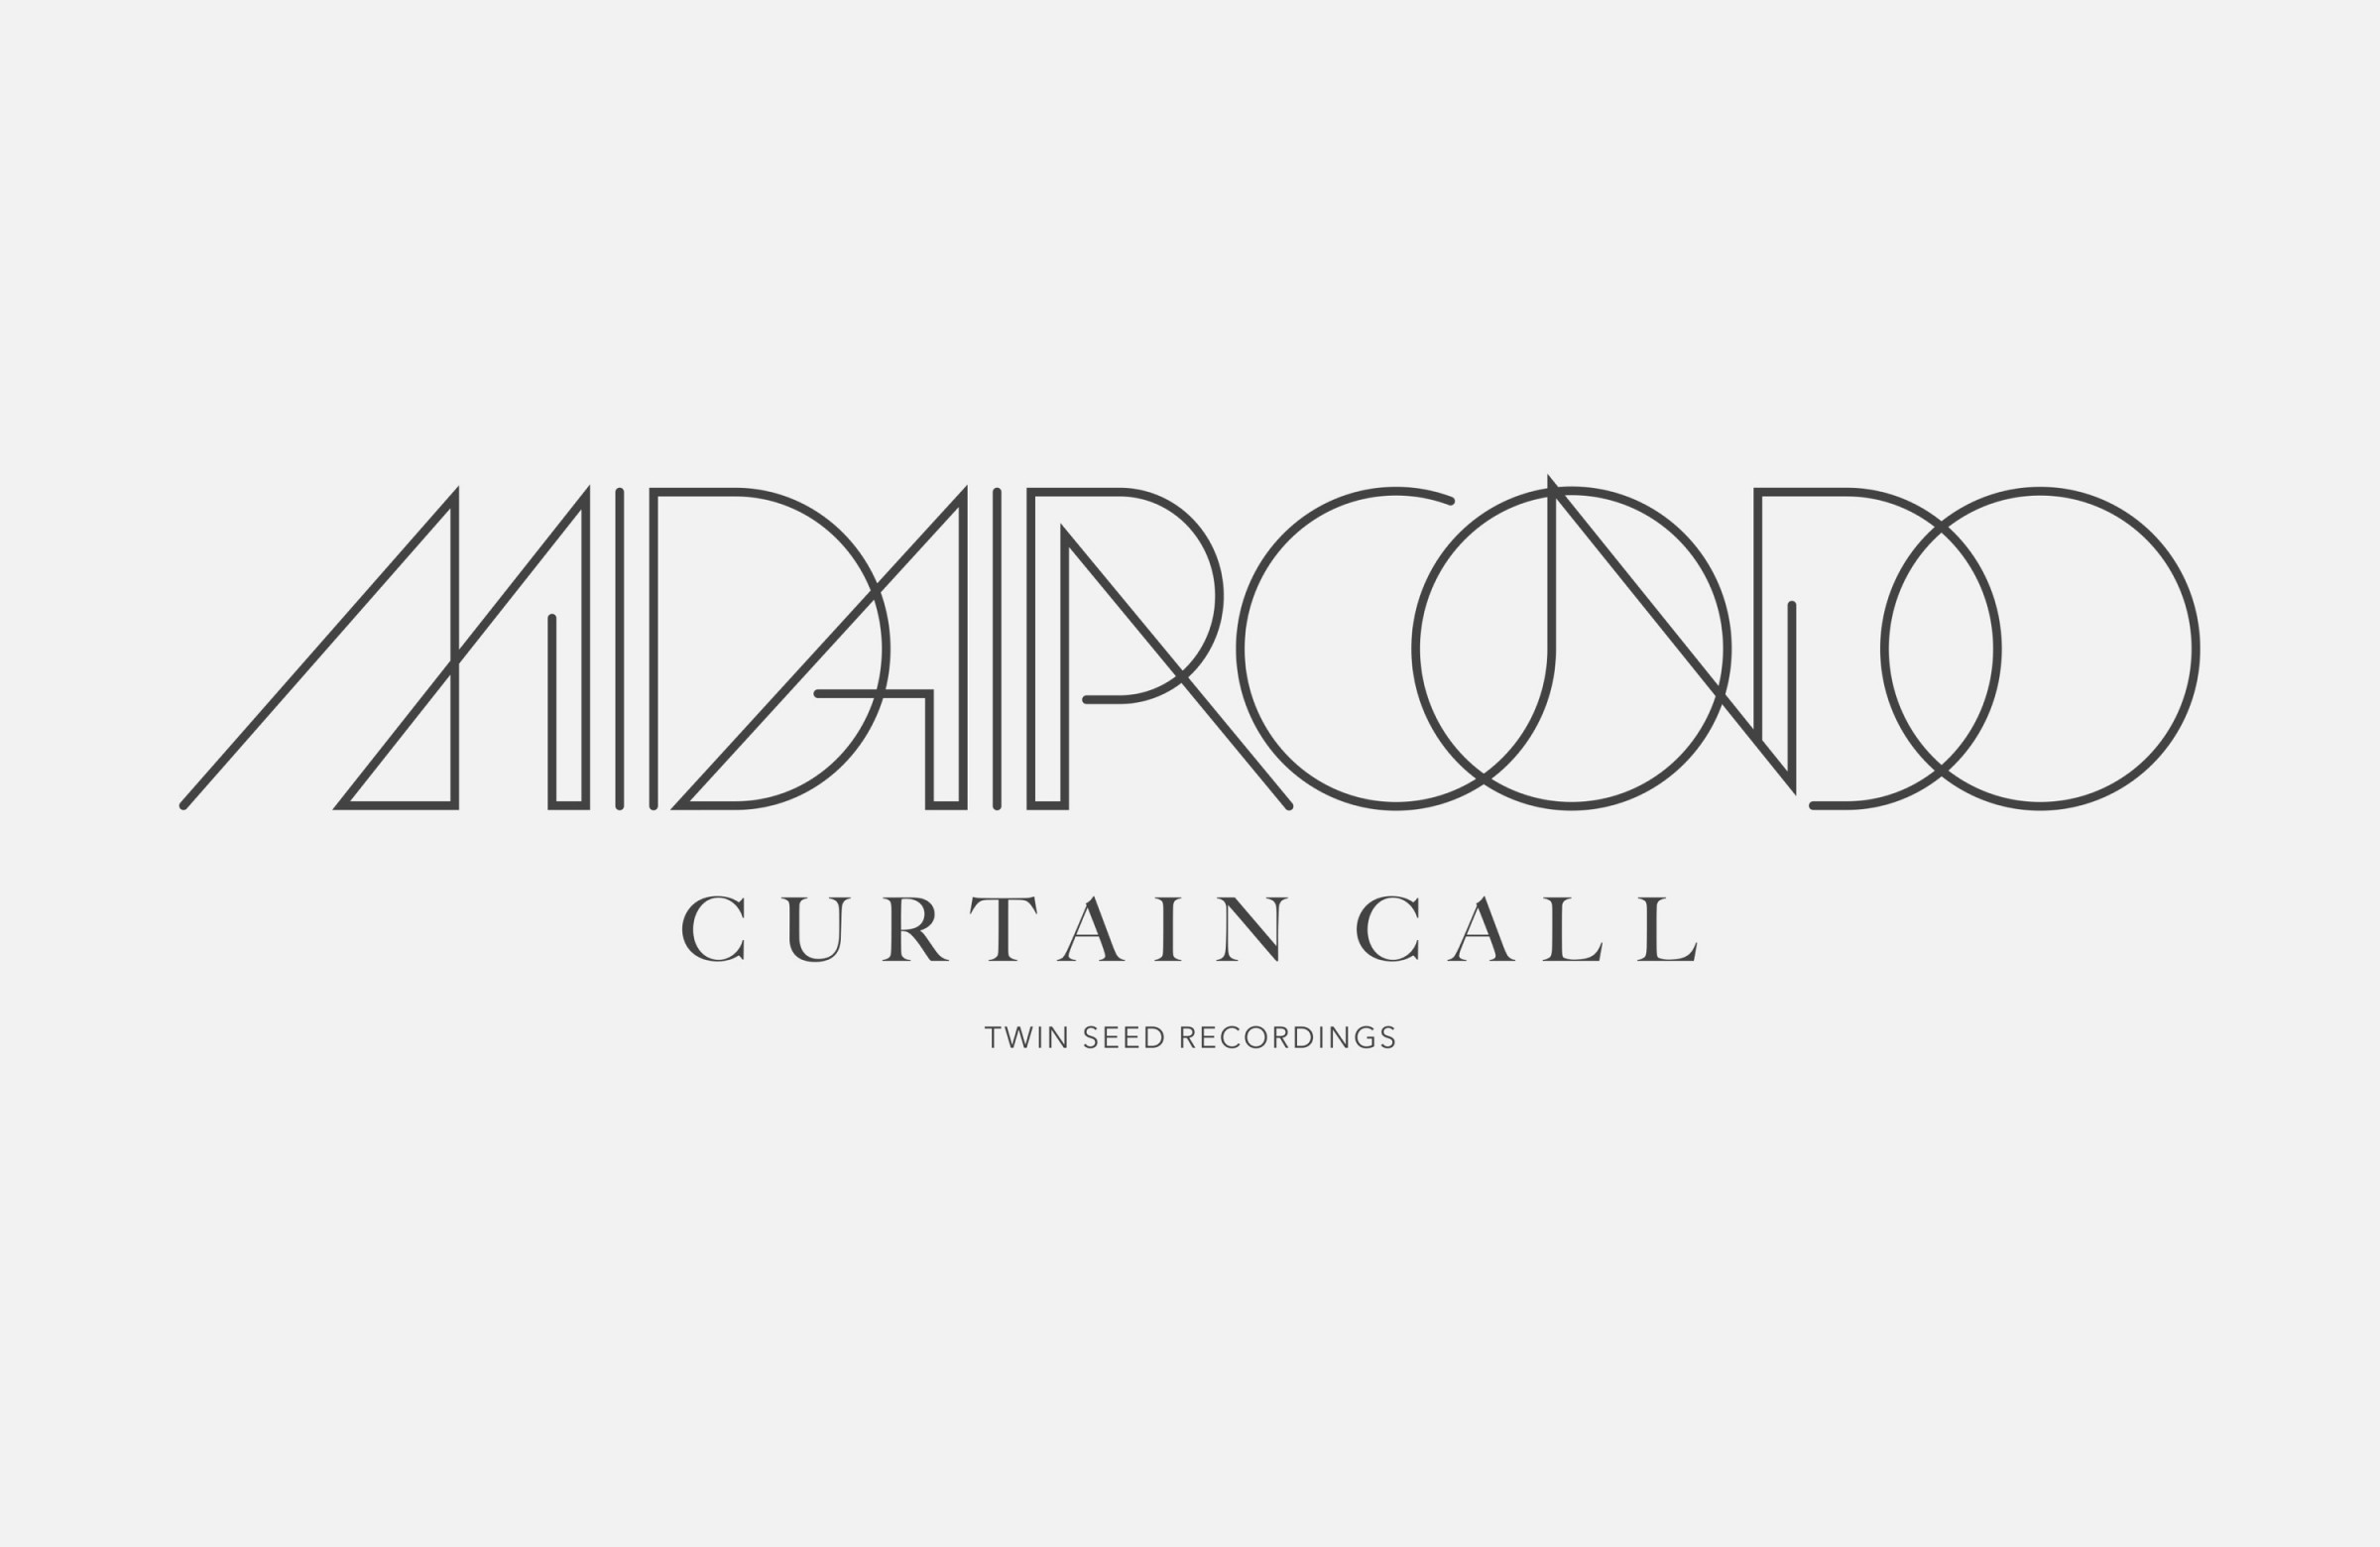 curtaincall.06